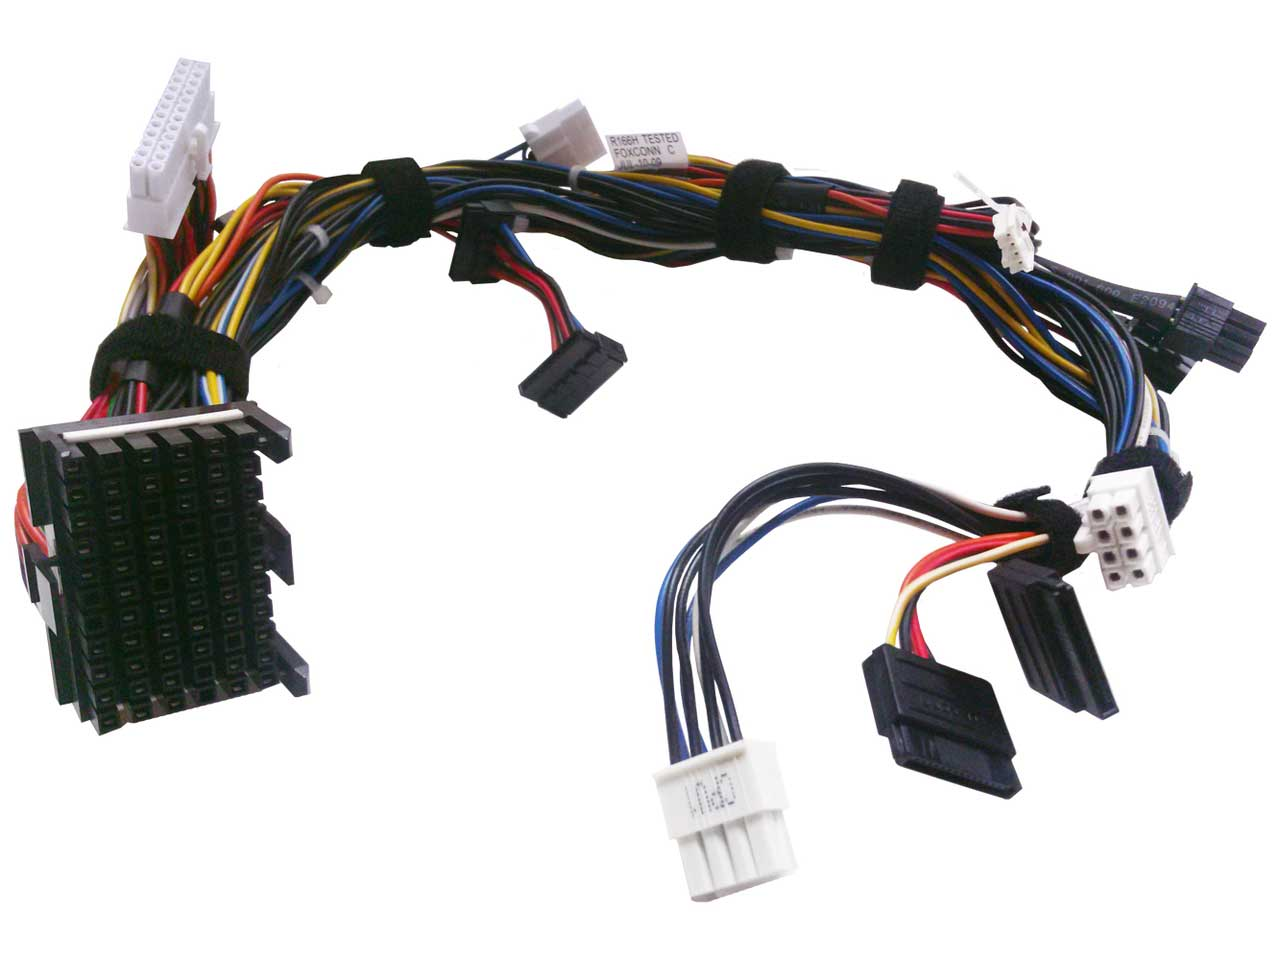 Power Supply Wiring Harness Free Diagram For You Atx Dell R166h Rh Velocitytechsolutions Com Computer